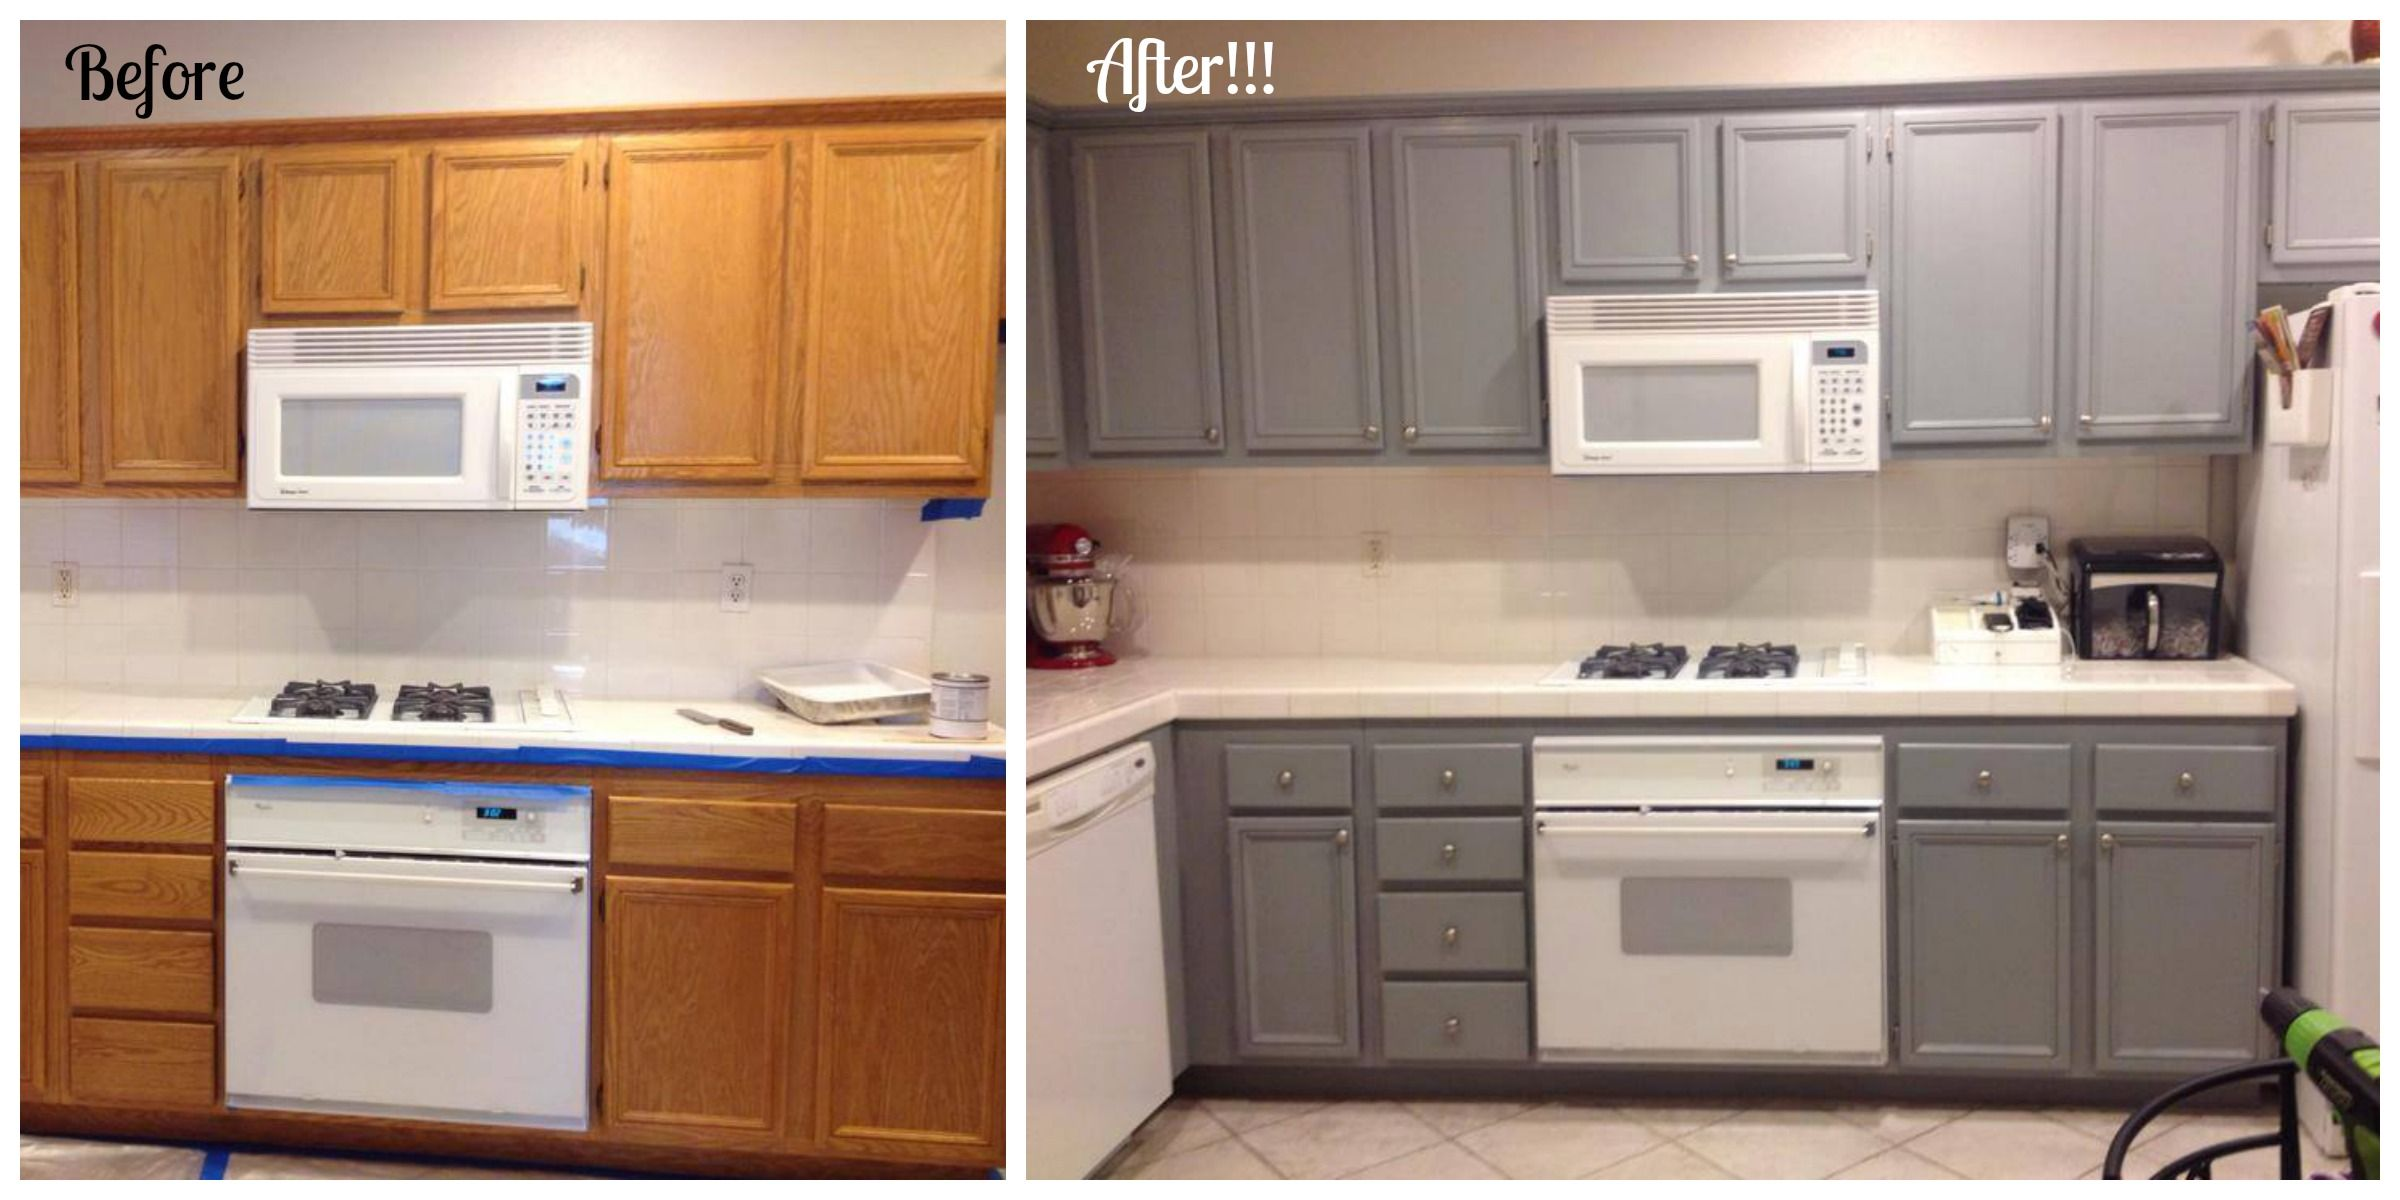 Amazing How A Small Change Like Painting Cabinets Can Make Such A Huge Impact In A Room Nuvo